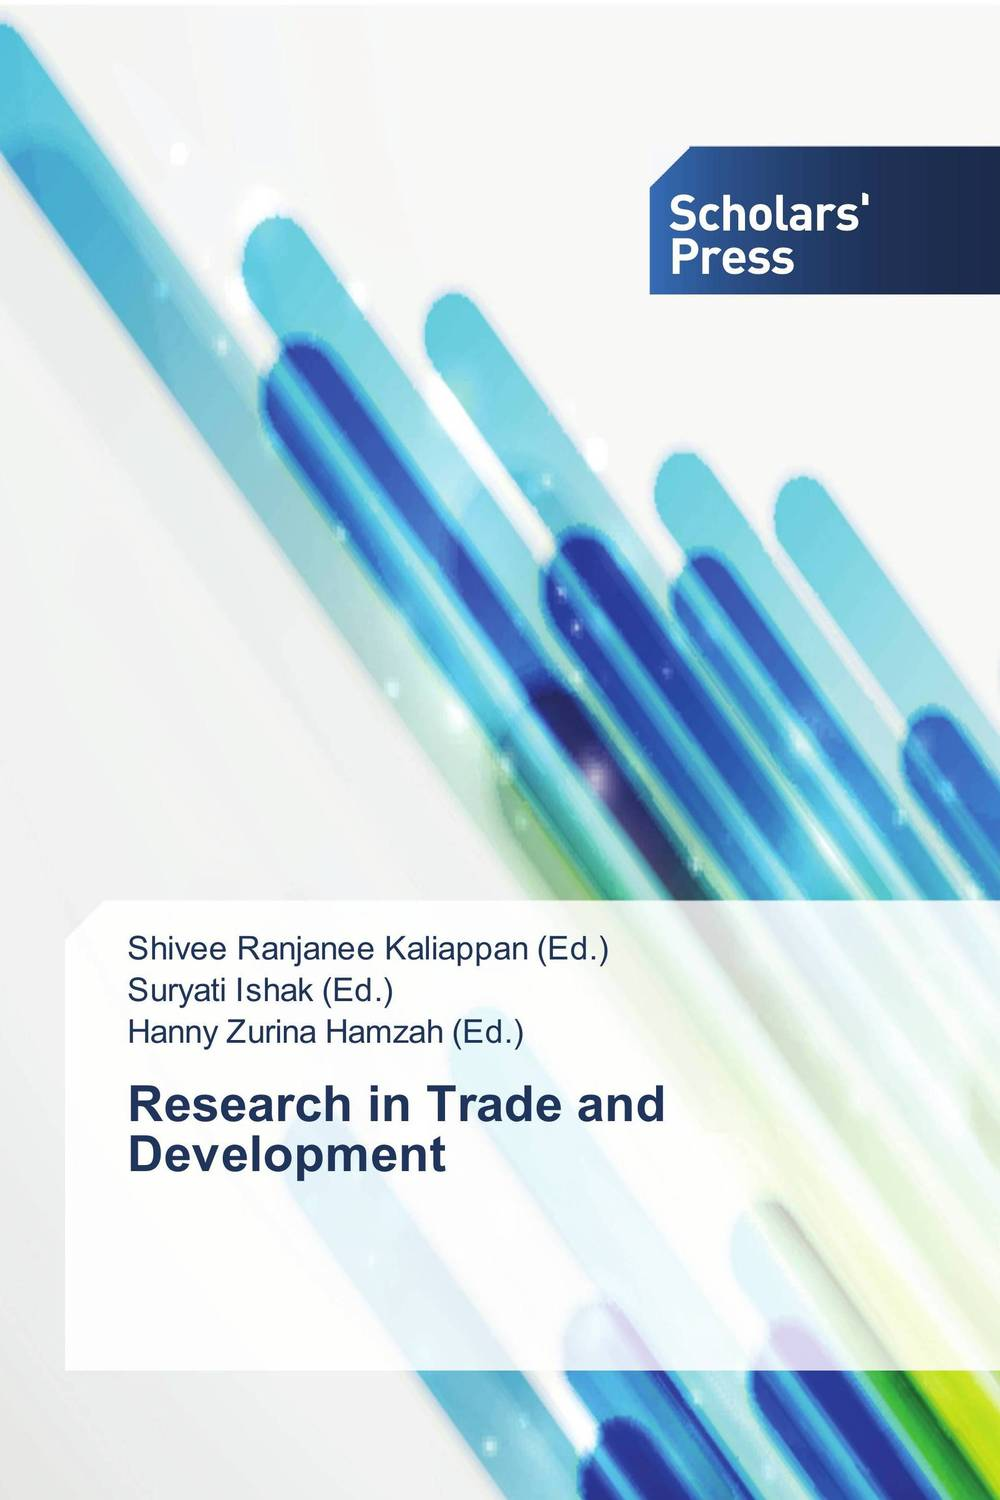 Research in Trade and Development regional trade agreements